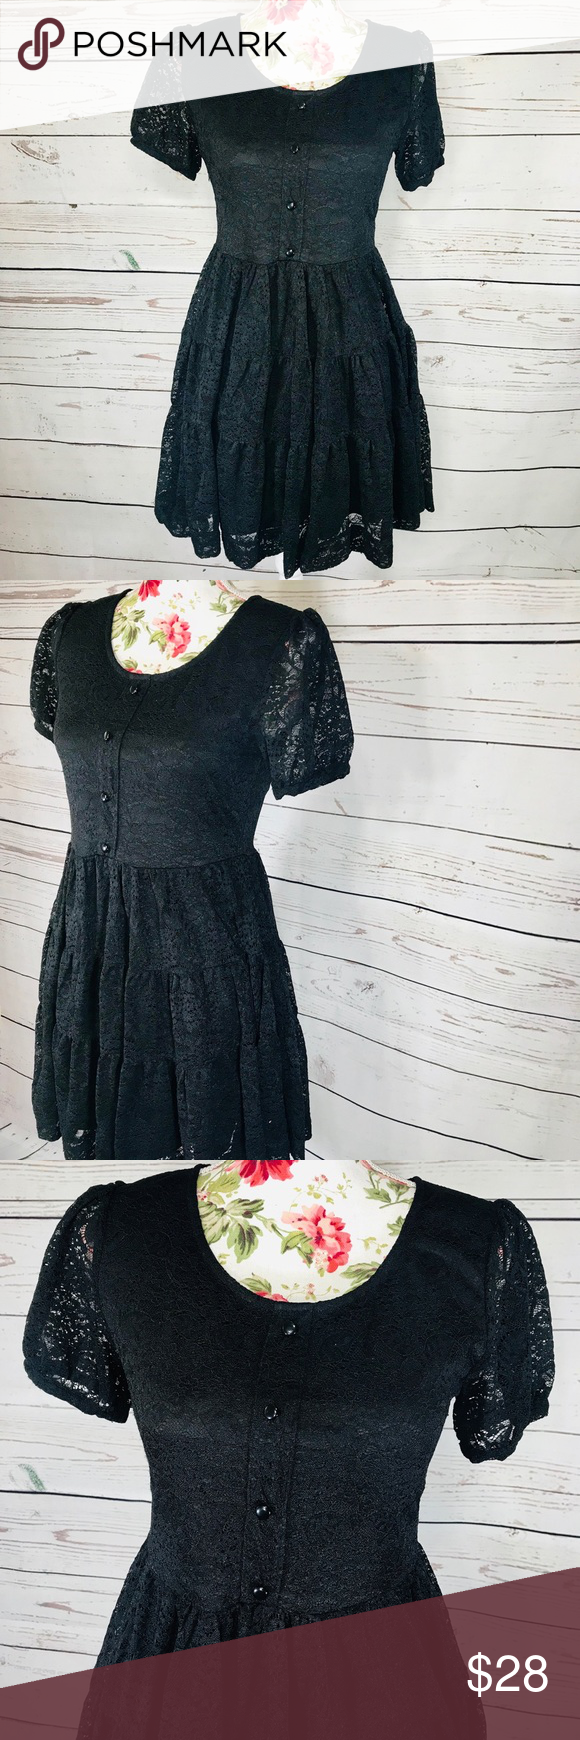 Vintage Feel Measeor Goth Size M Black Lace Dress Lace Dress Black Lace Dress Dresses [ 1740 x 580 Pixel ]